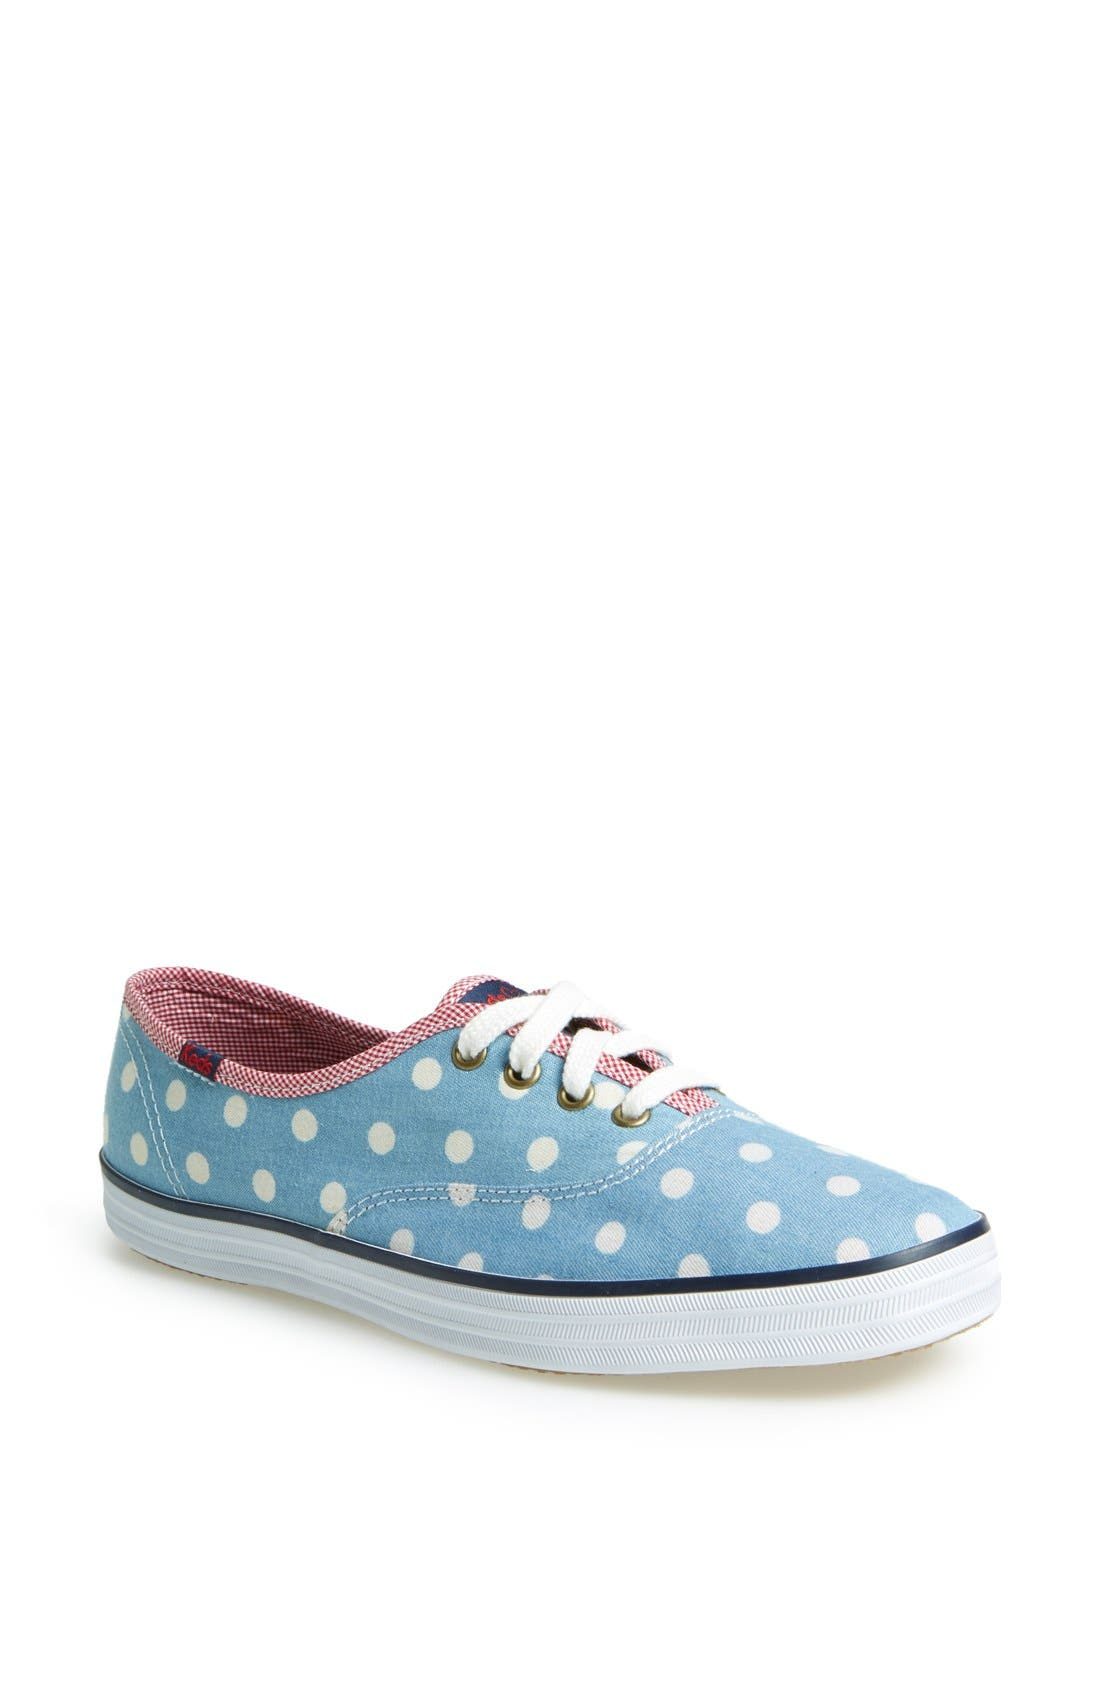 Main Image - Keds® Taylor Swift 'Champion Polka Dot' Sneaker (Women)